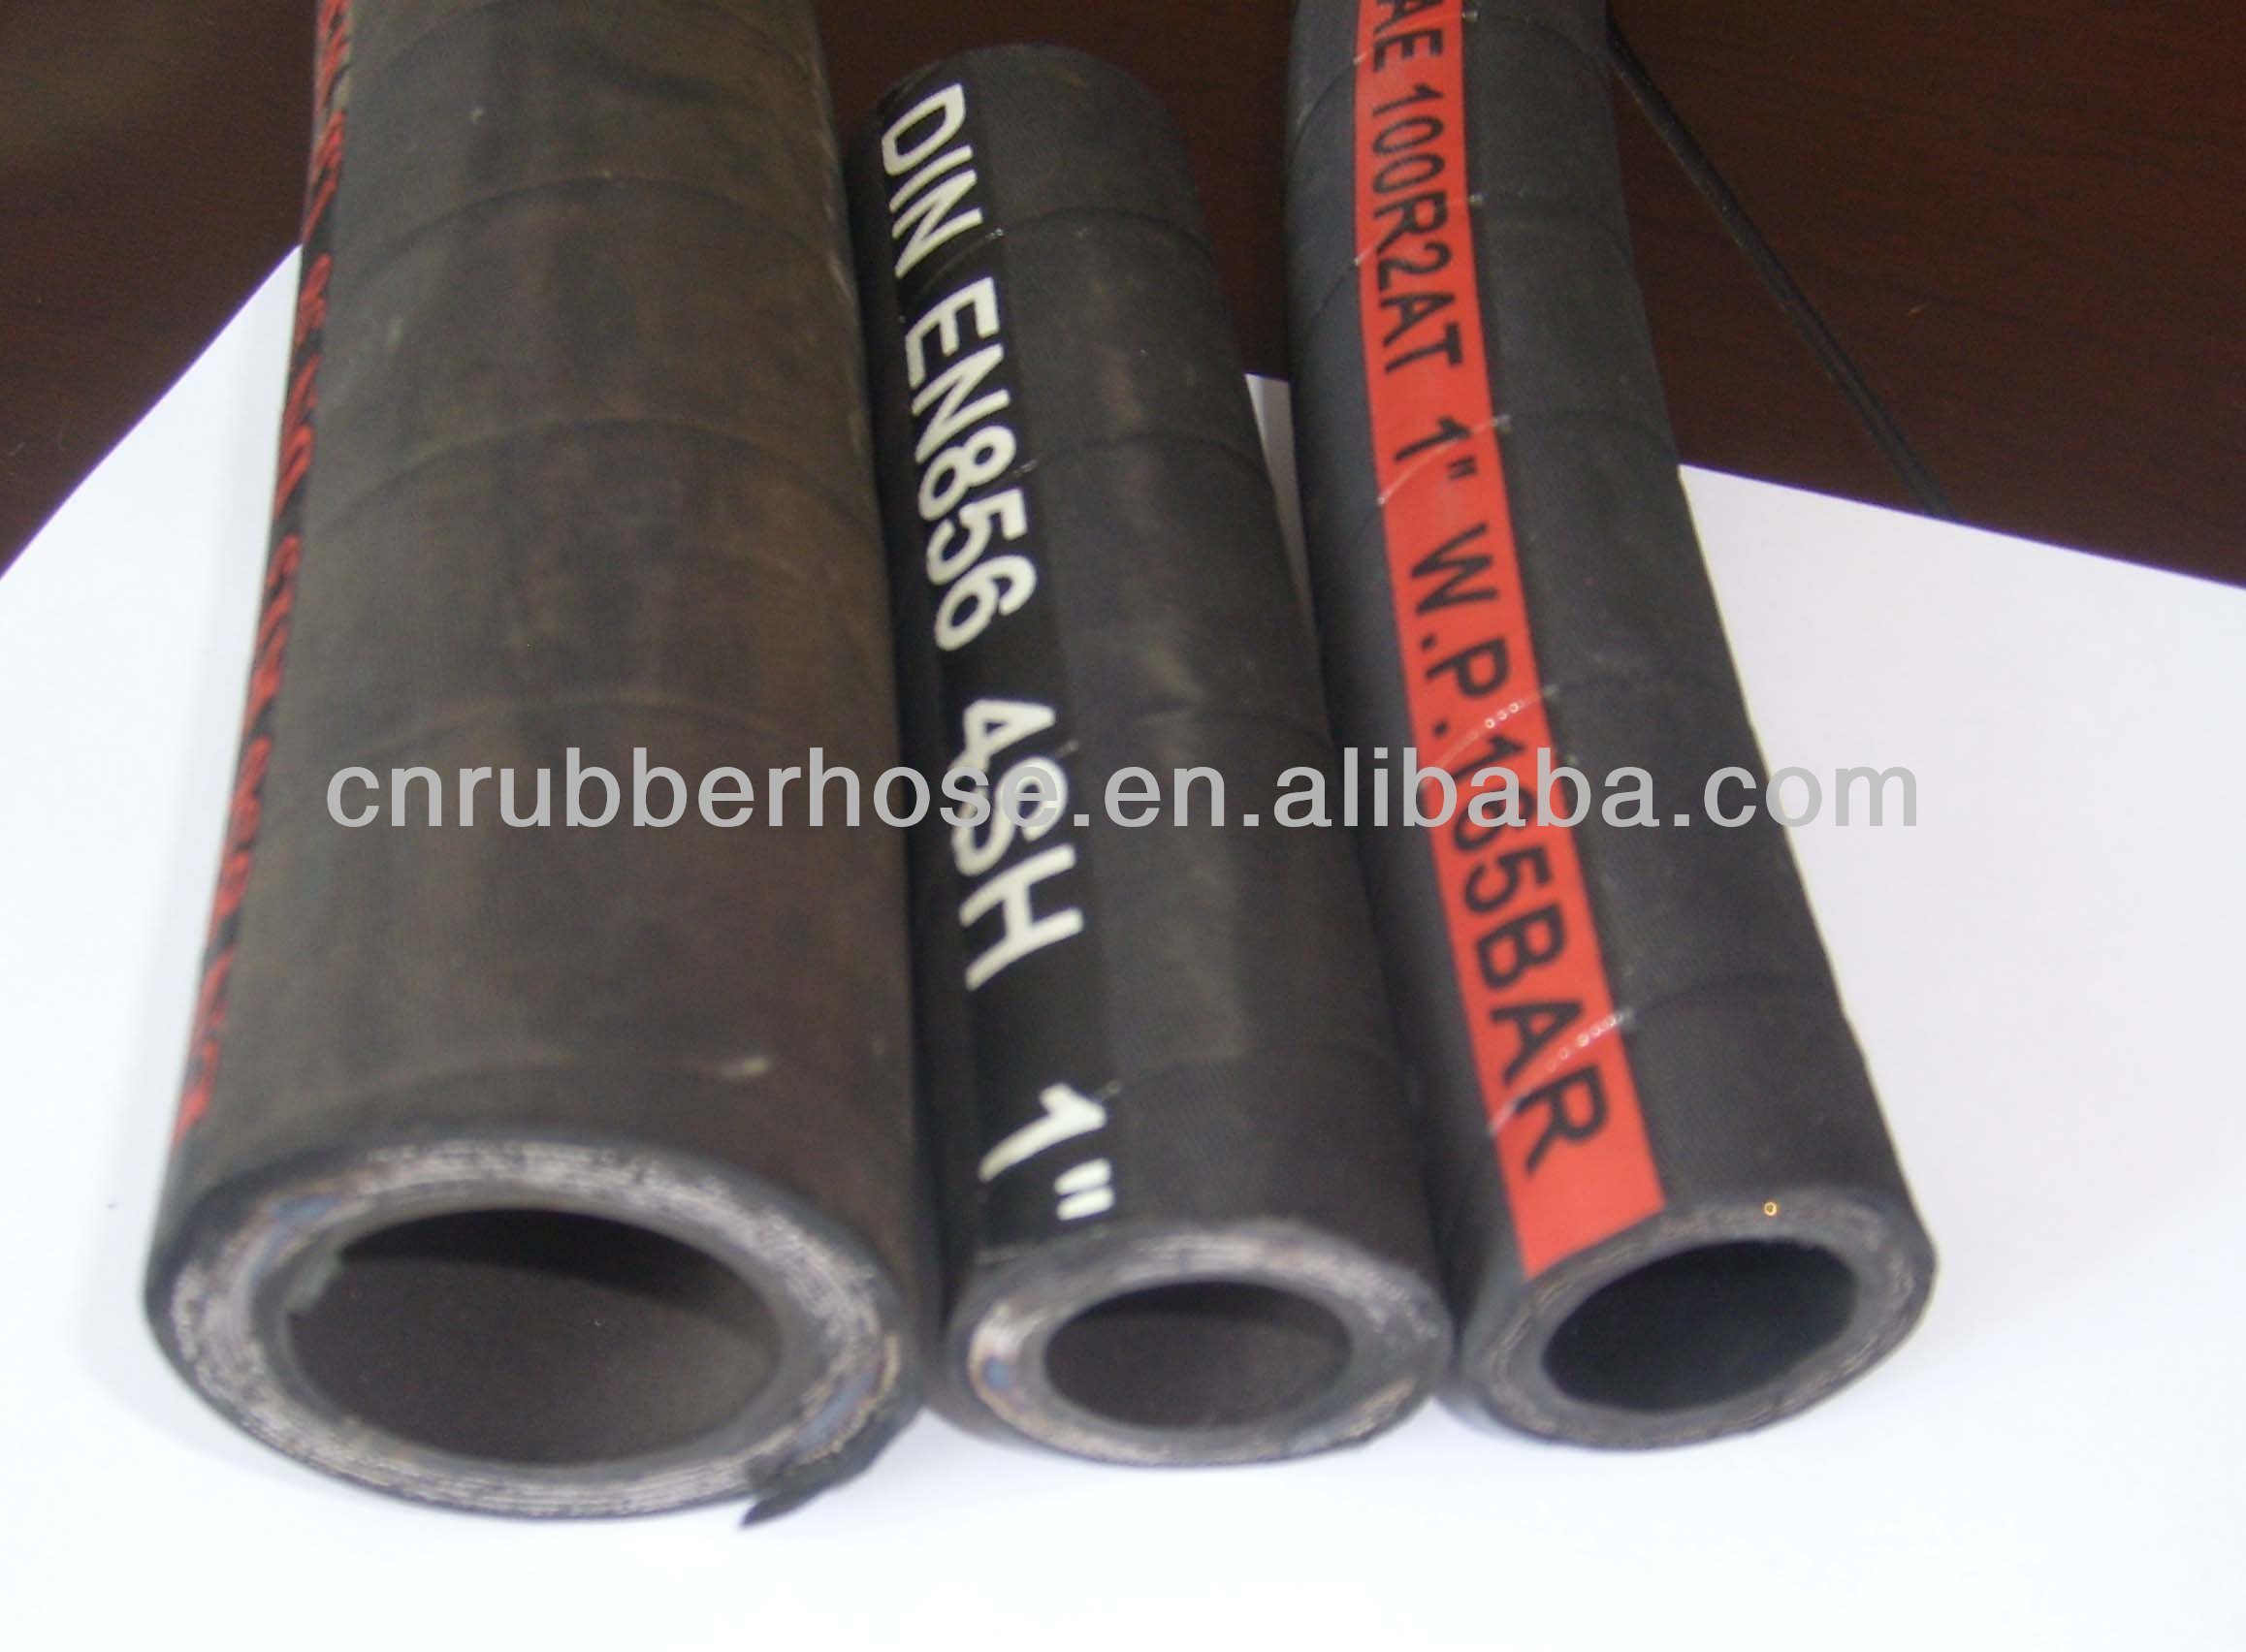 Carbon Rubber Hose at rock-bottom price before Christmas Day